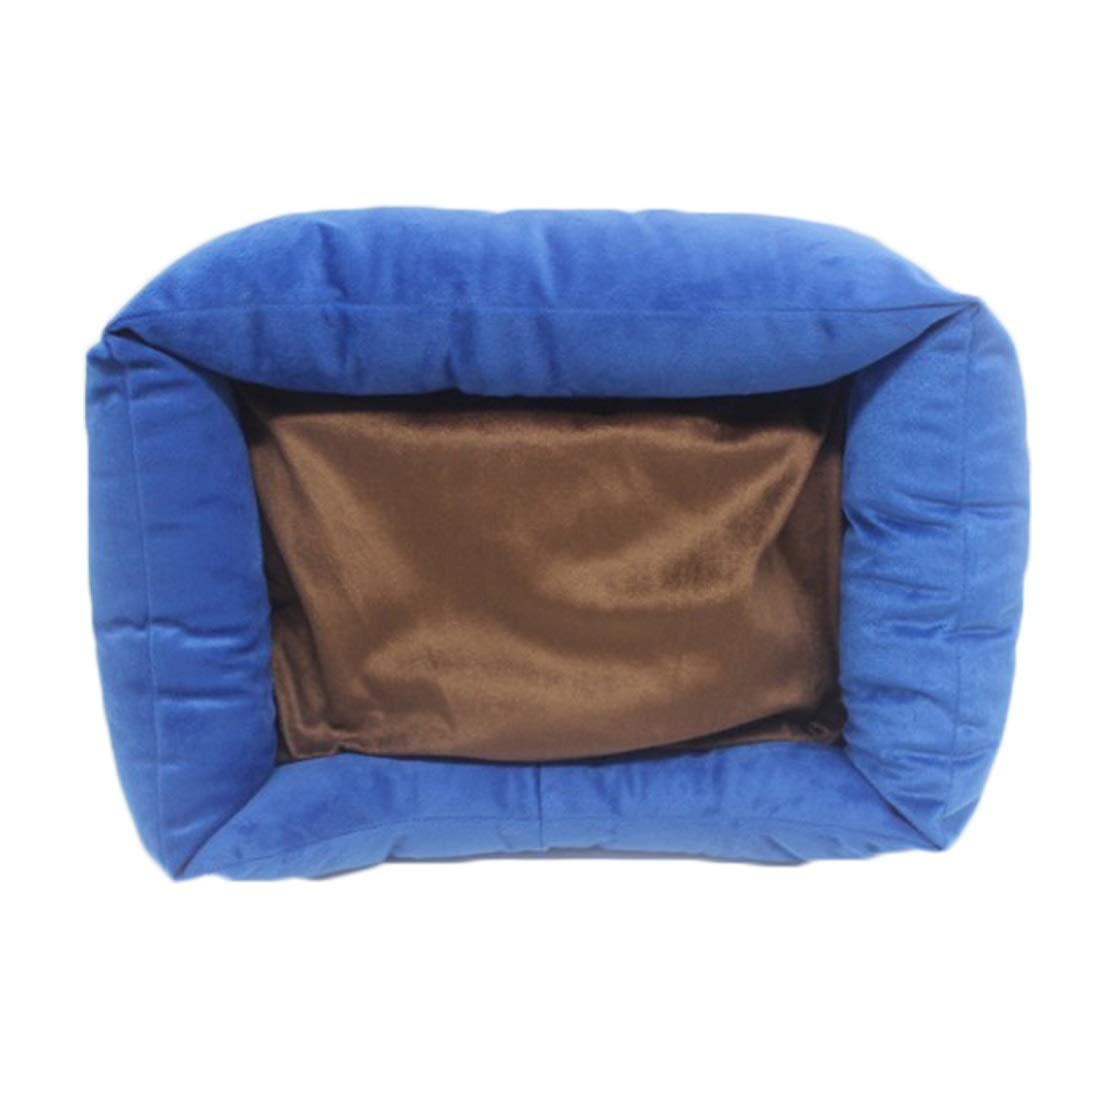 bluee 423010cm bluee 423010cm WENNEW Dog Kennel Autumn and Winter Dog Bed Cat Bed Pet Supplies (color   bluee, Size   42  30  10cm)